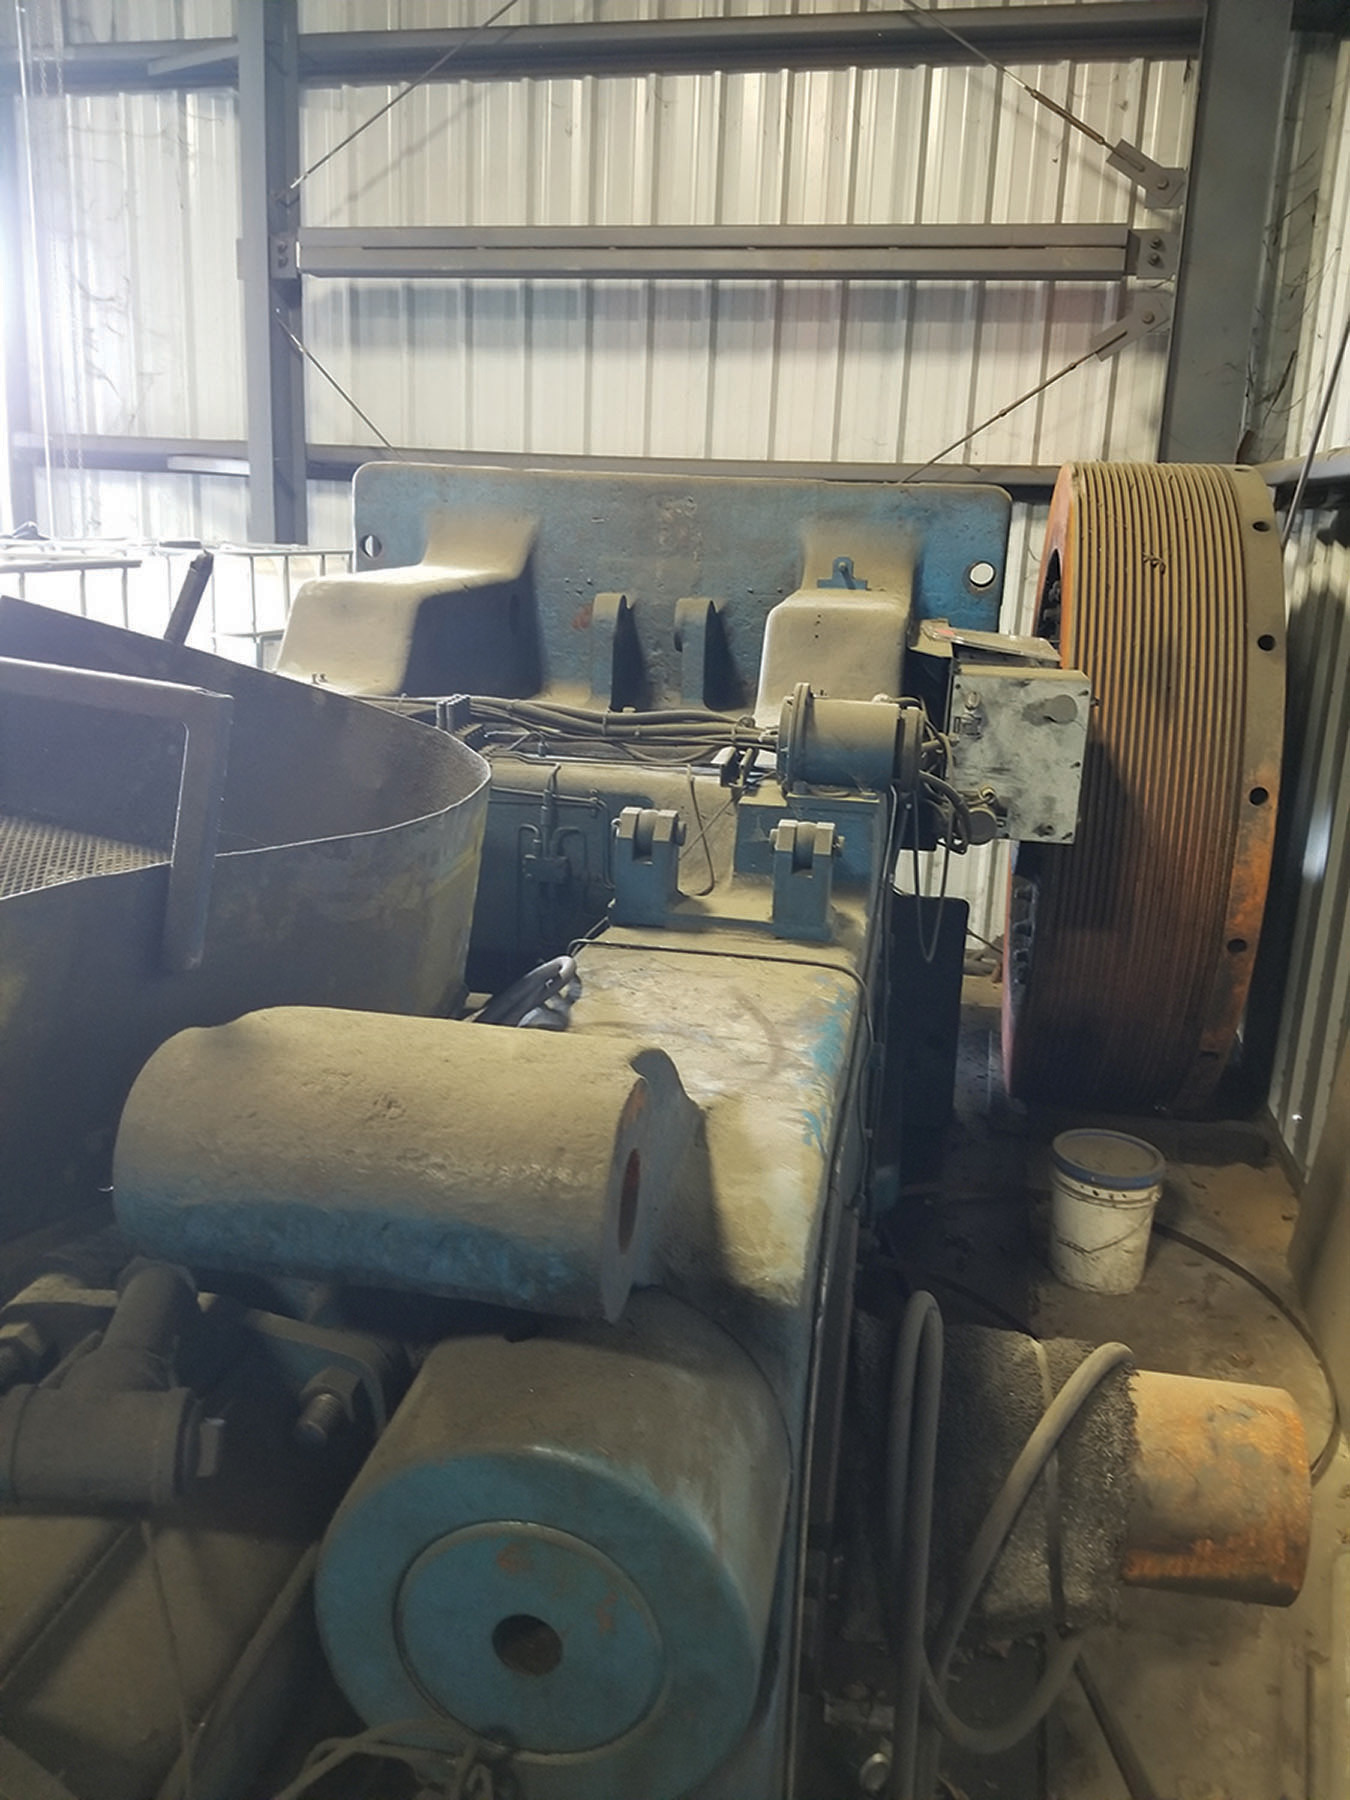 Lot 25 - NATIONAL 1300-TON PRESS, REMOVED FROM SERVICE, NEW FLYWHEEL, S/N 21153 ***$5,500.00 RIGGING FEE***